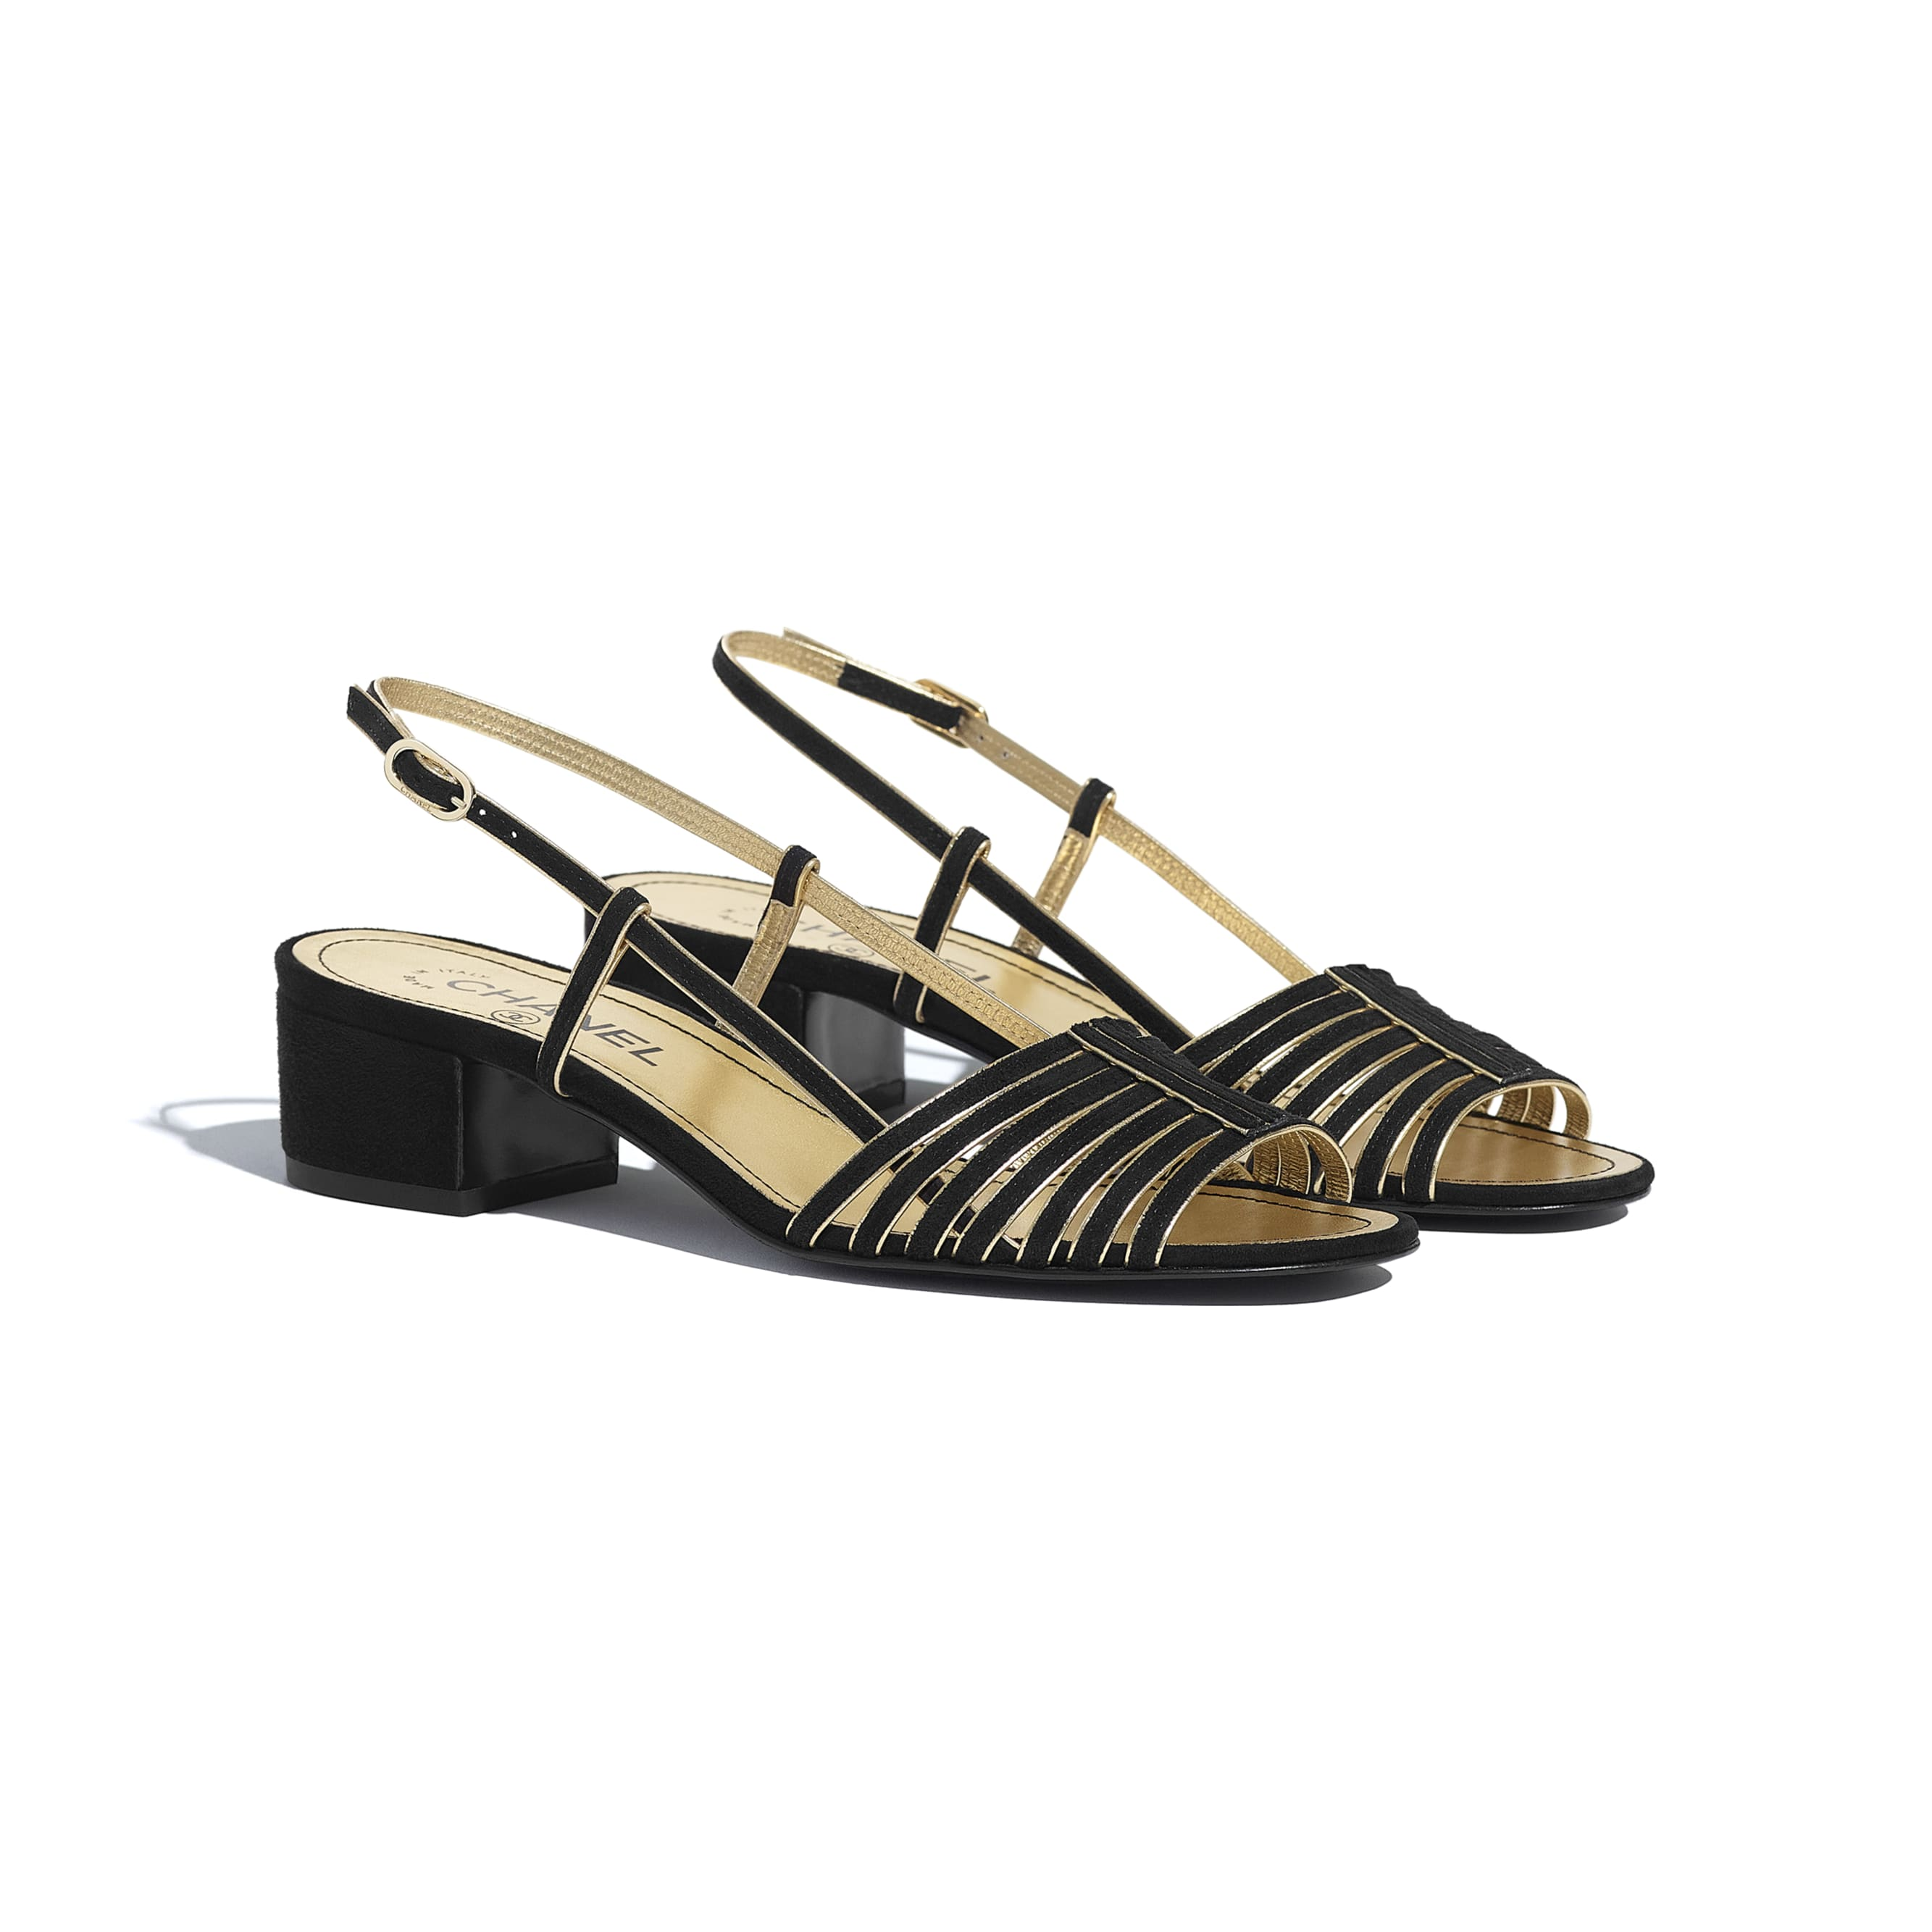 Sandals - Black & Gold - Suede Kidskin - CHANEL - Alternative view - see standard sized version